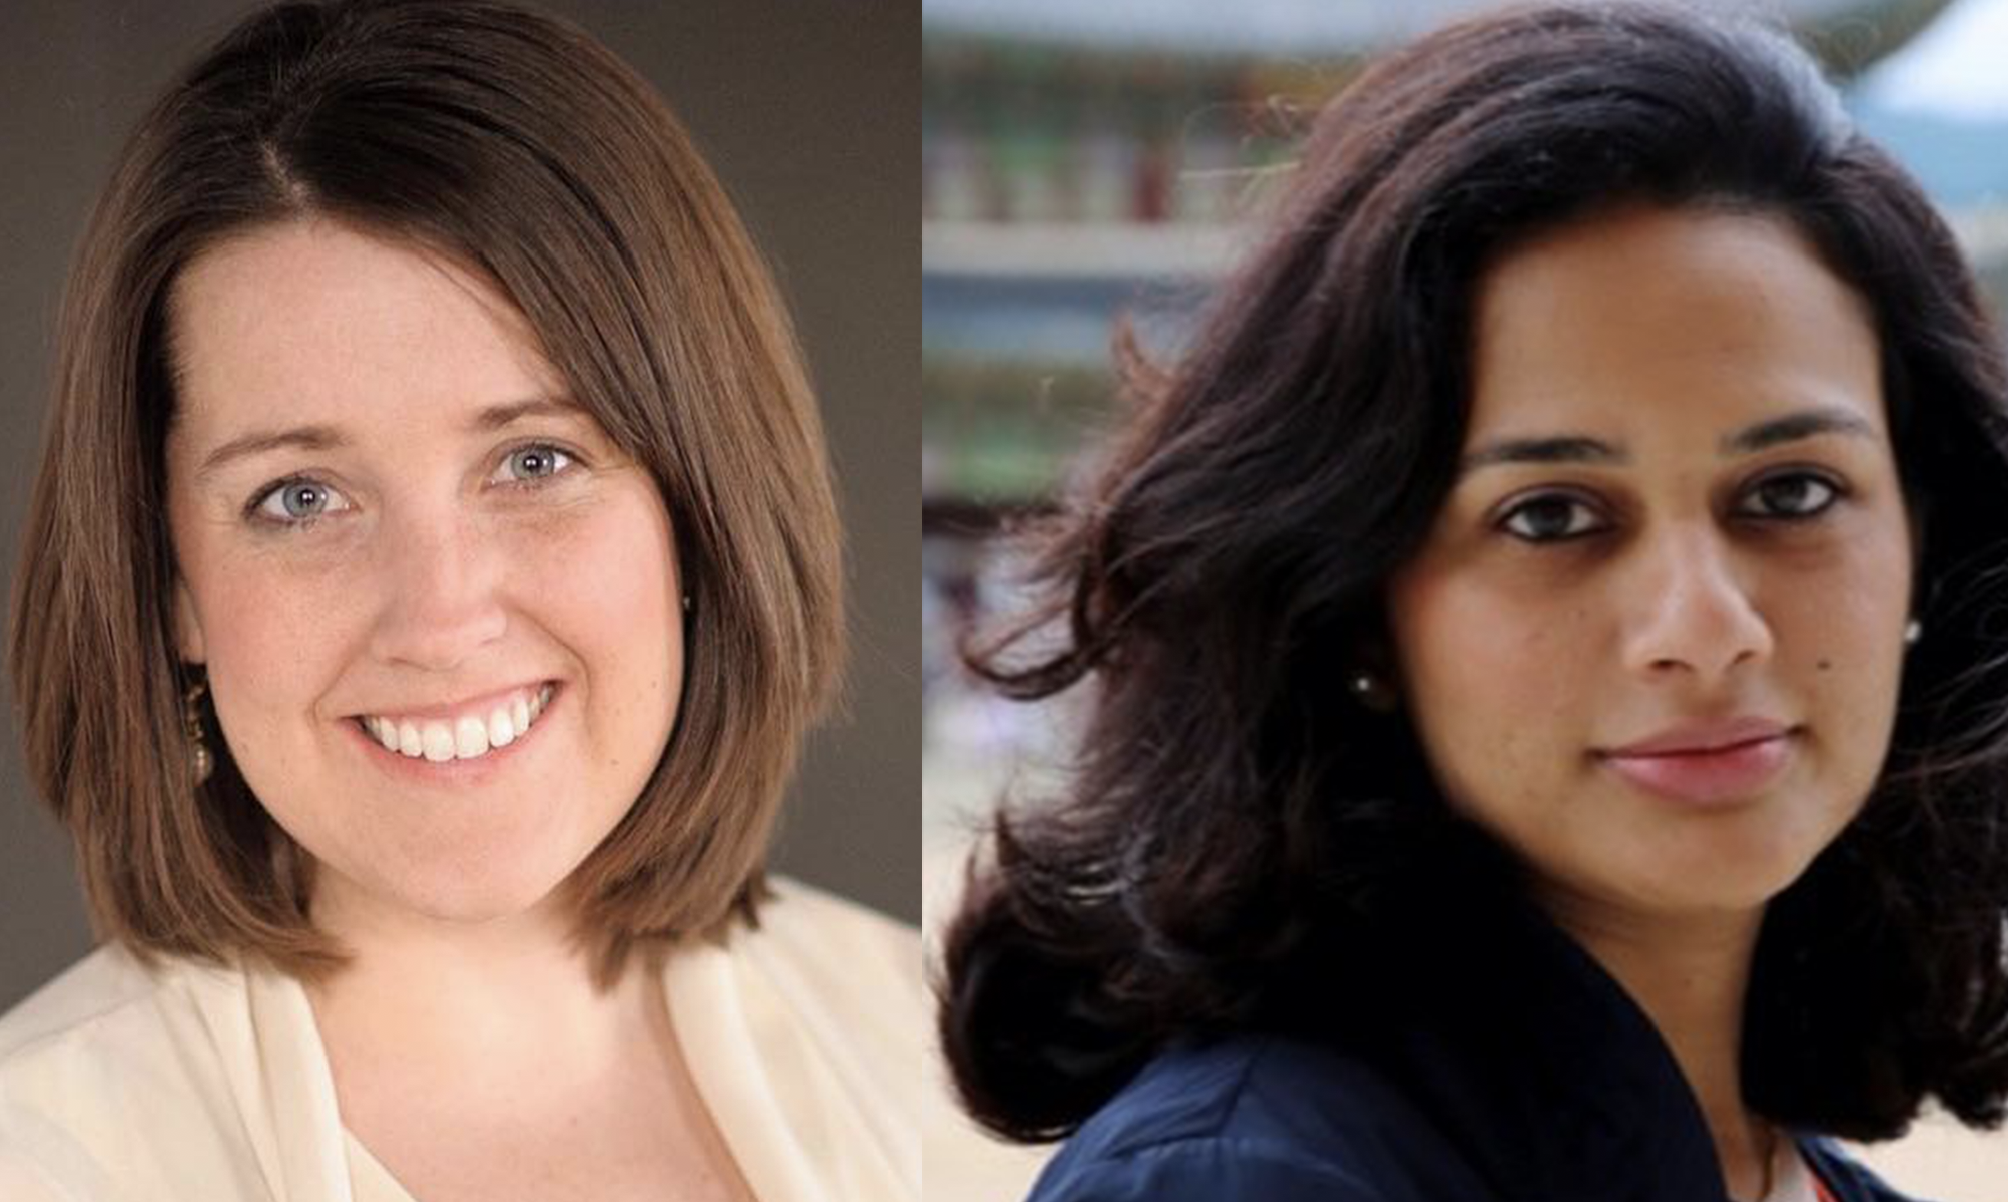 Ep. 11 – Women in media, with Meg McDonnell and Susie Pinto